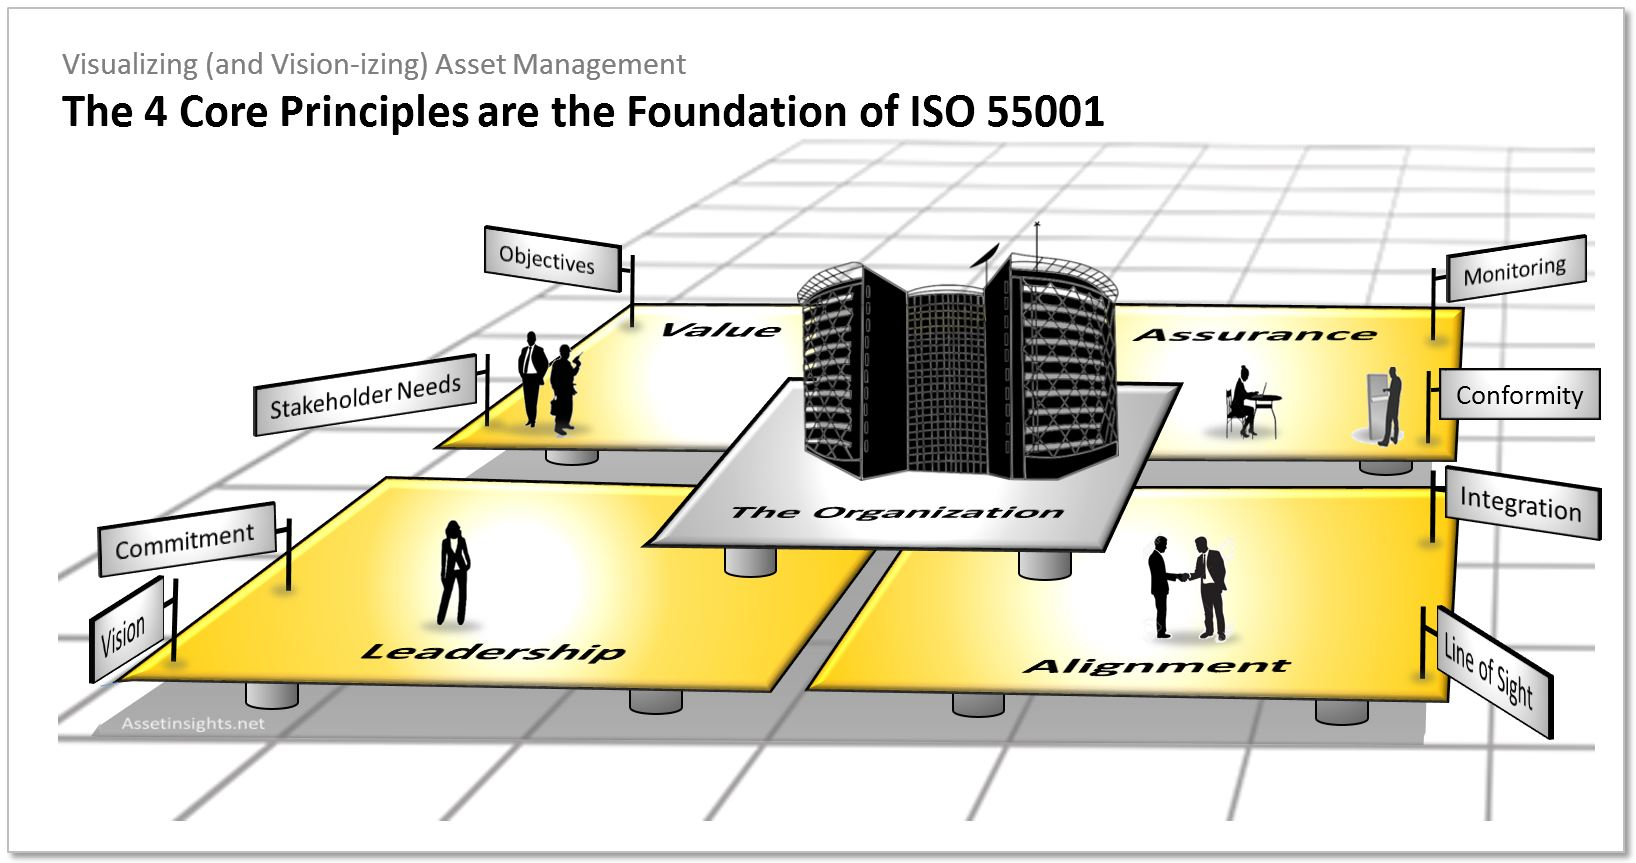 The four core principles of asset management are the foundation of ISO 55001 (ISO 55000)